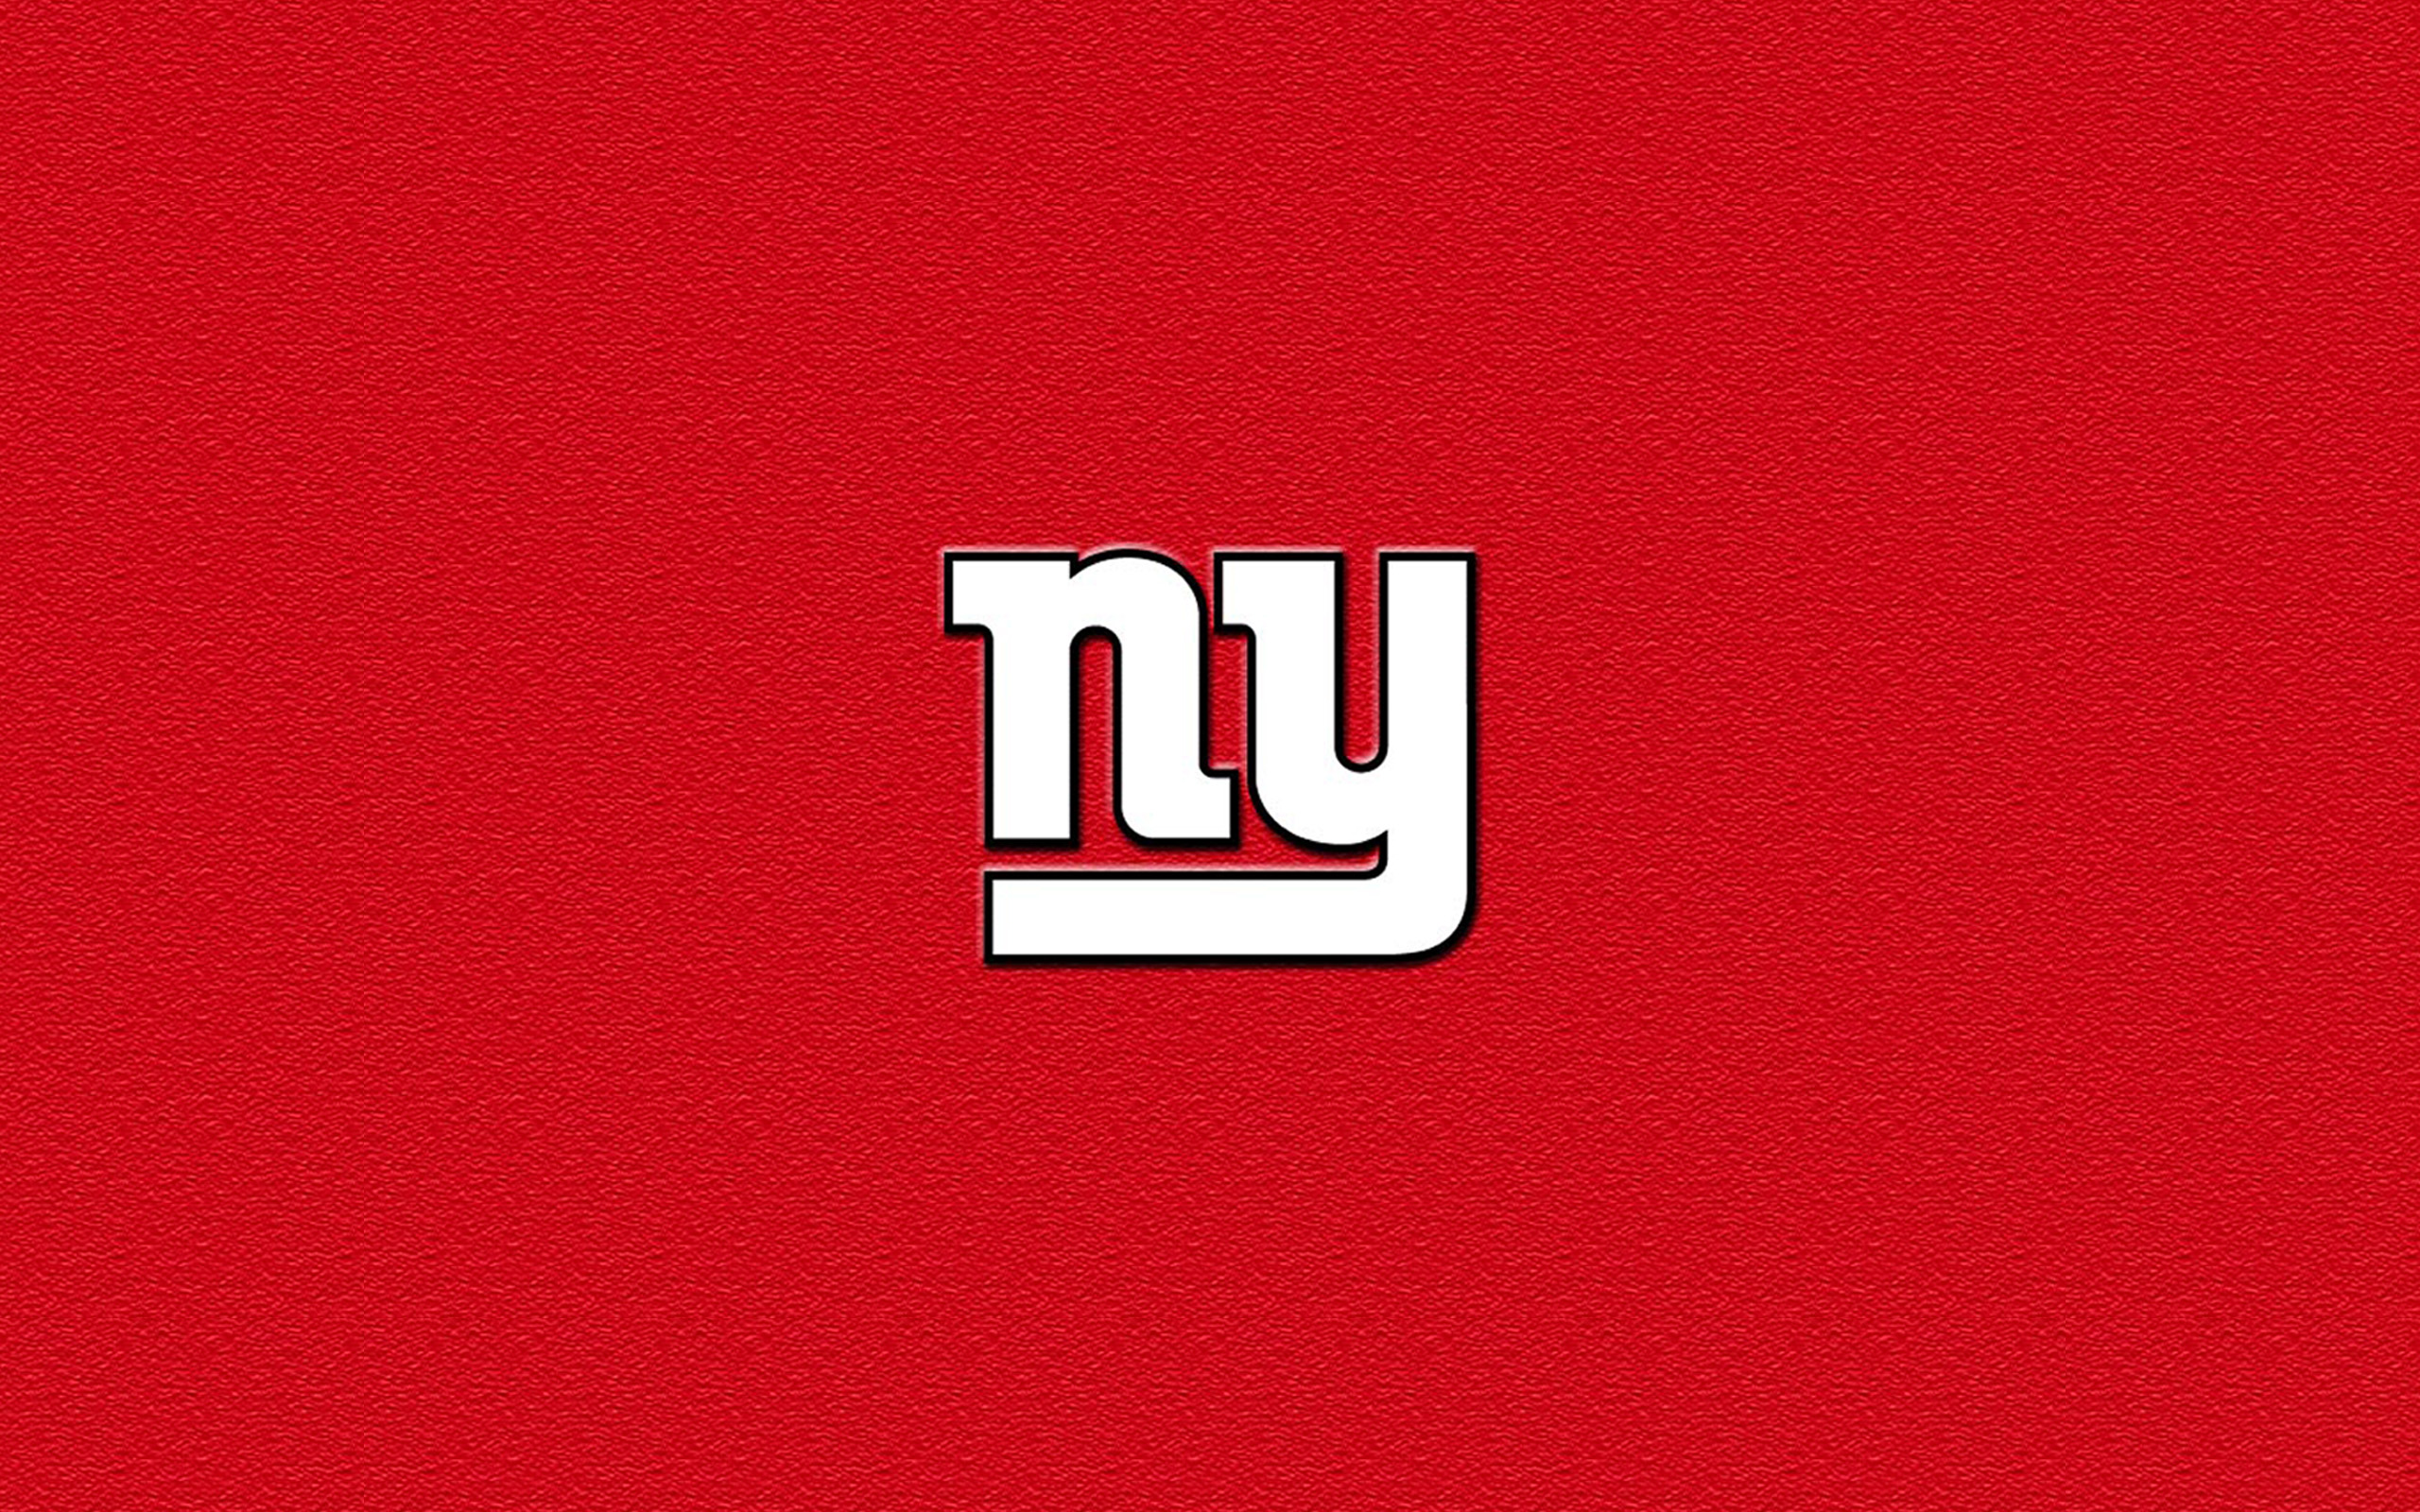 New York Giants Hd Wallpaper Background Image 2560x1600 Id